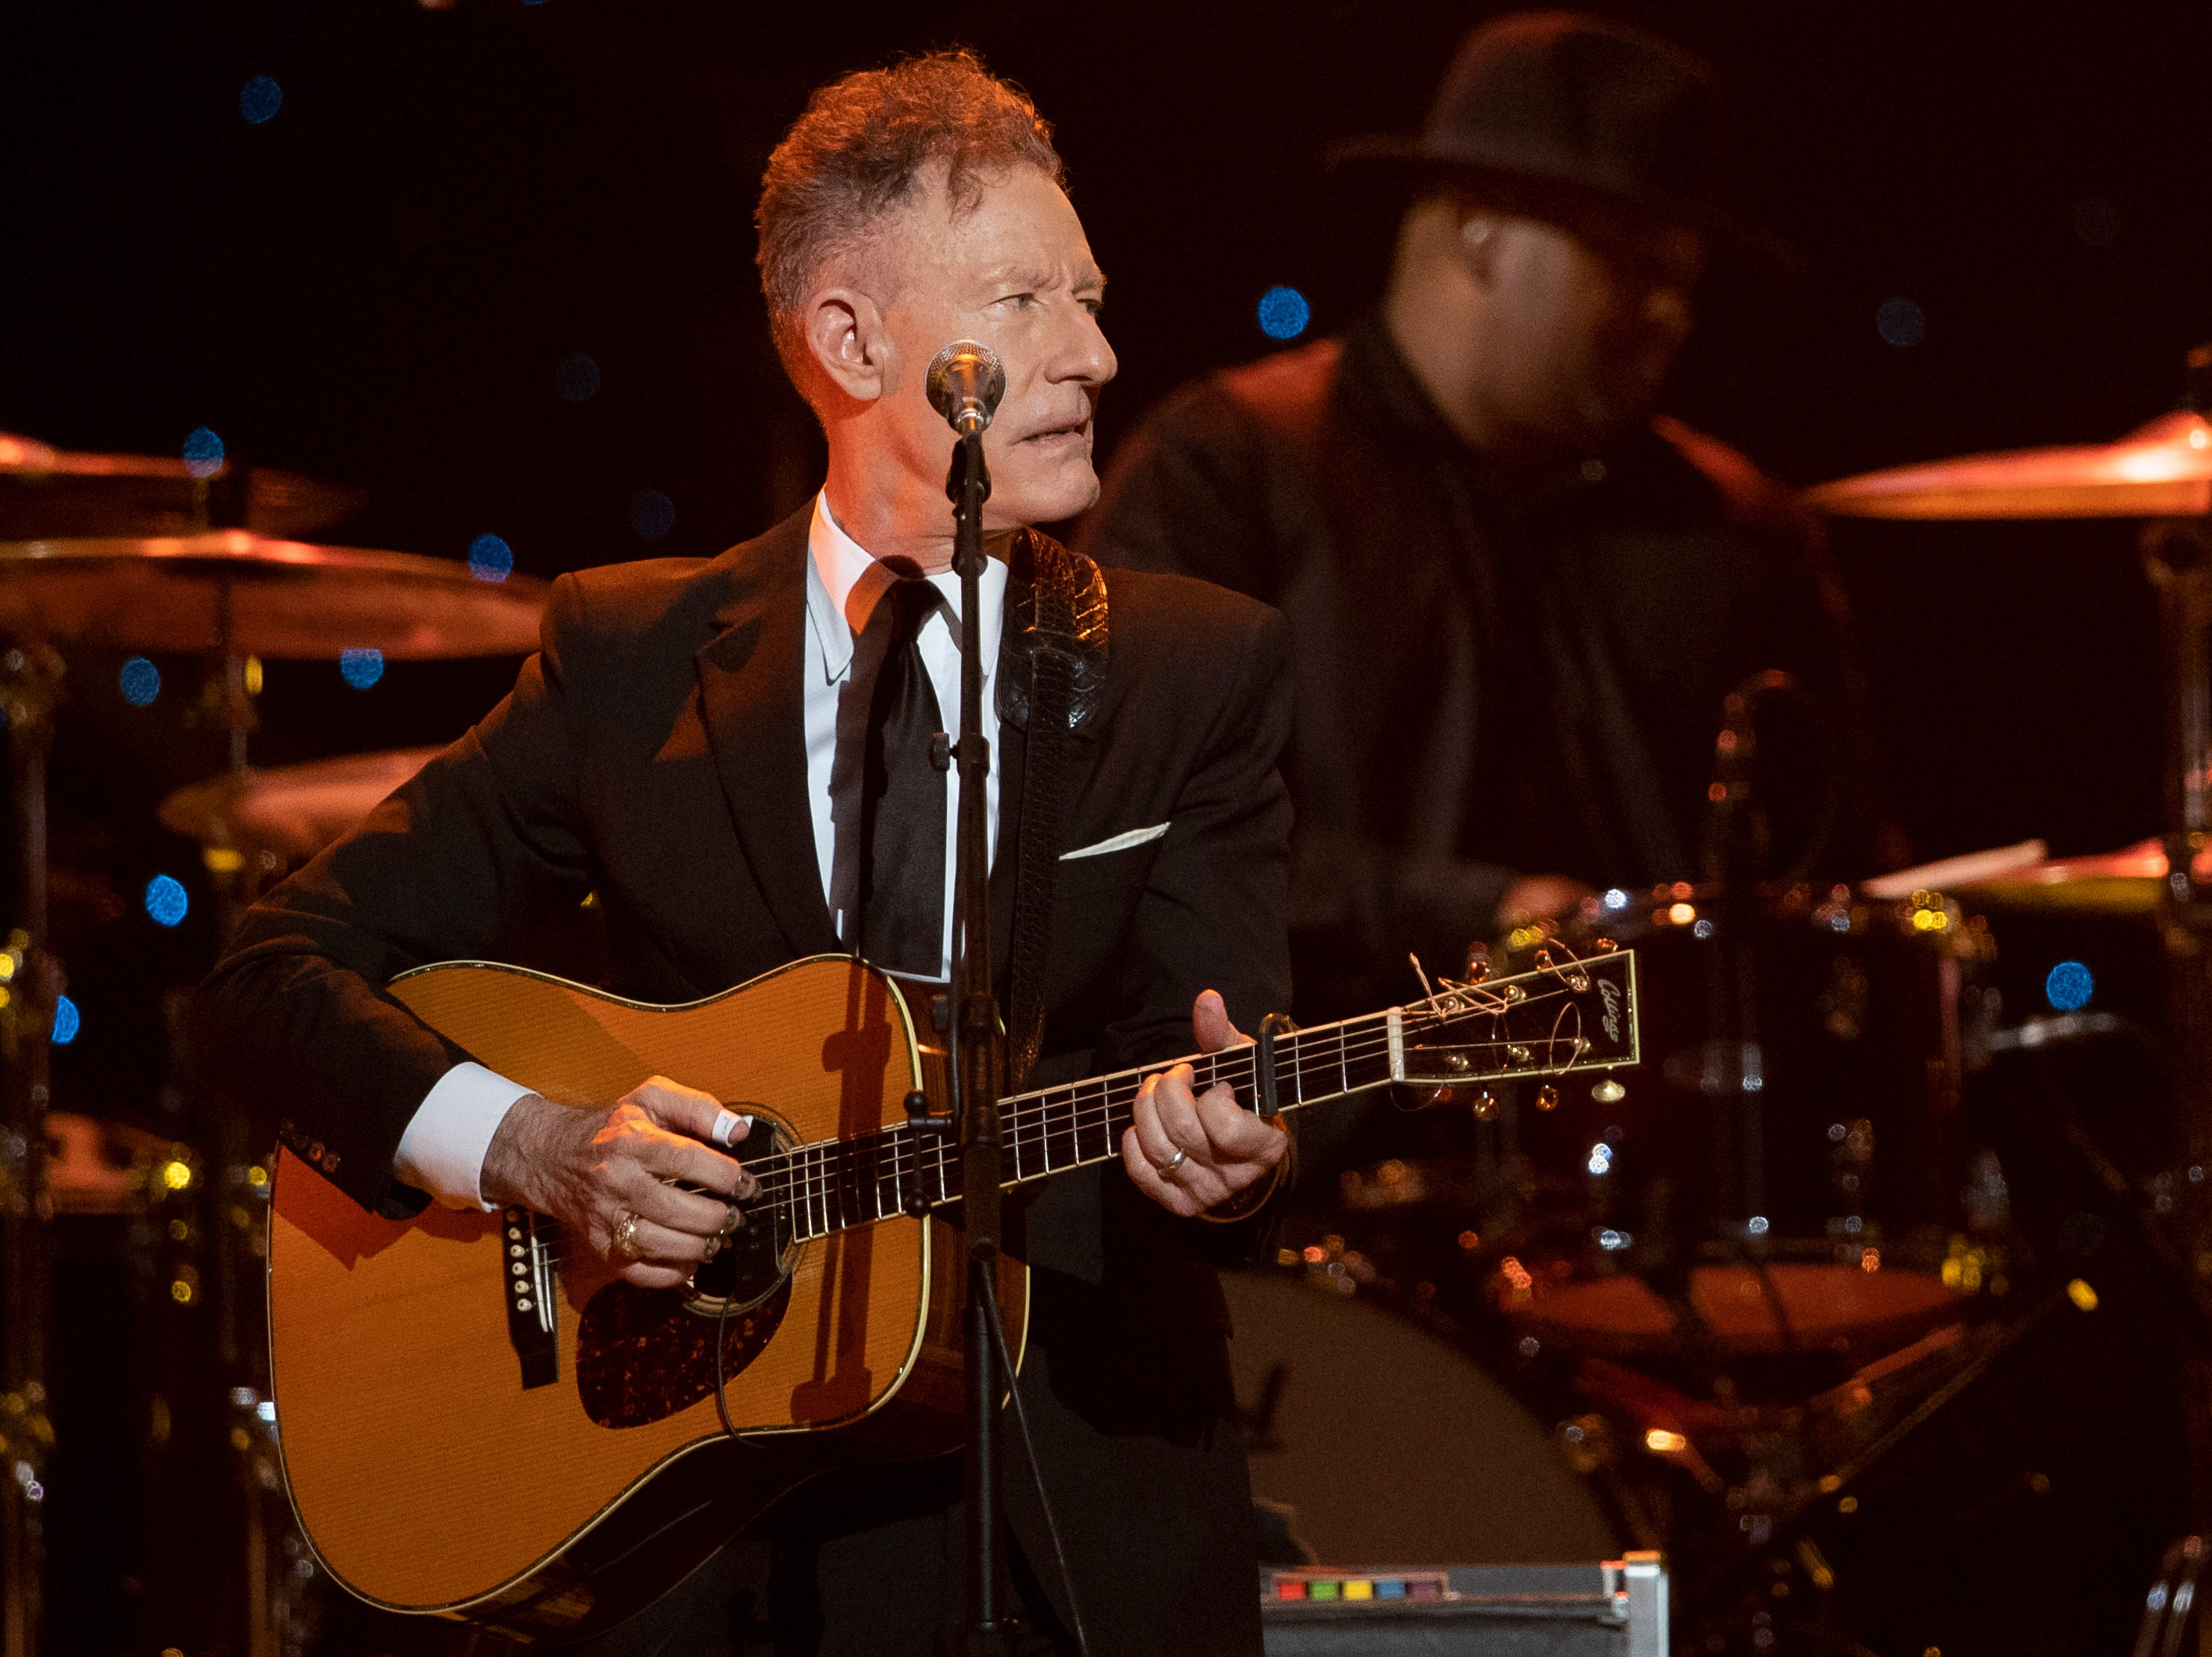 Lyle Lovett performs during the Willie: Life & Songs of an American Outlaw concert at Bridgestone Arena in Nashville, Tenn., Saturday, Jan. 12, 2019.